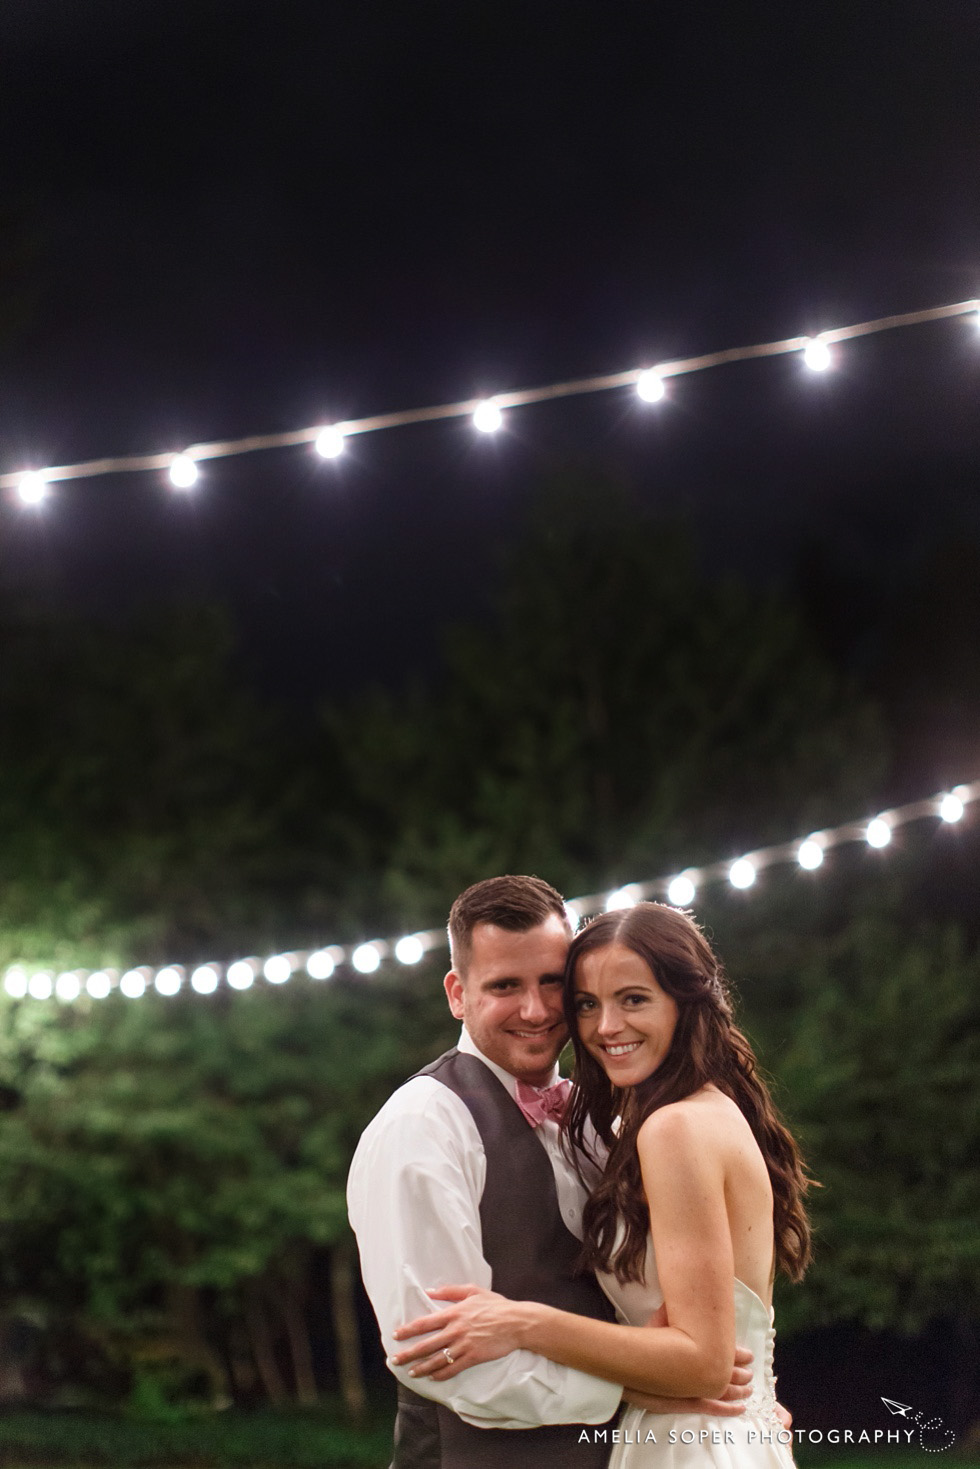 KelleyFarmWedding_SoperPhotography_DerekShannon_46